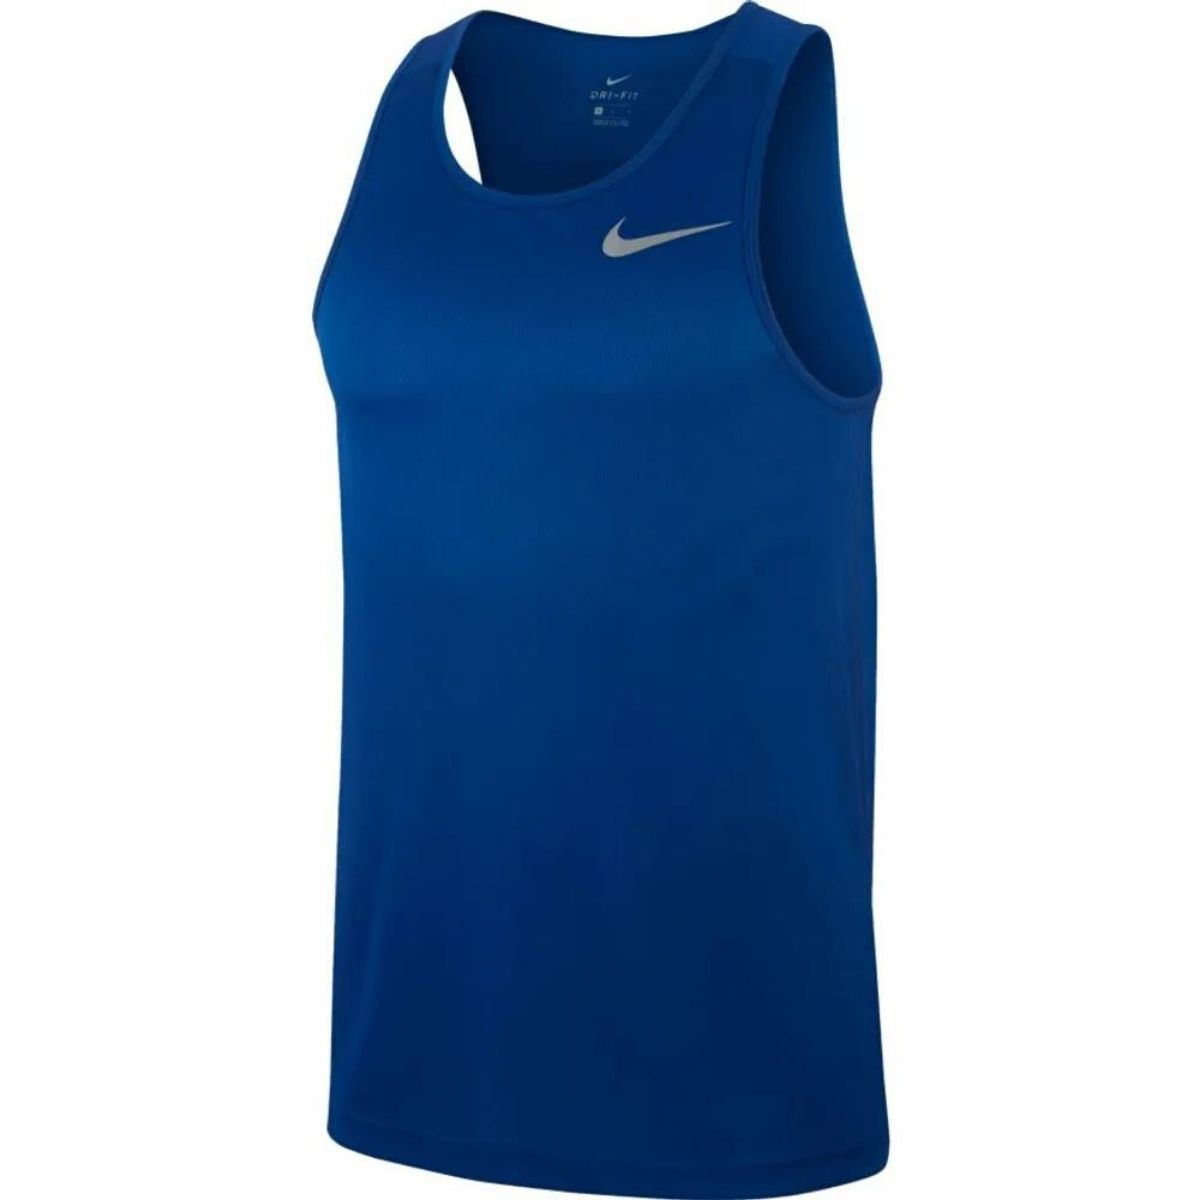 Final suficiente Stratford on Avon  Camiseta Regata Nike Breathe Run Dri Fit Masculina - Azul - Loja Esporte  Saúde